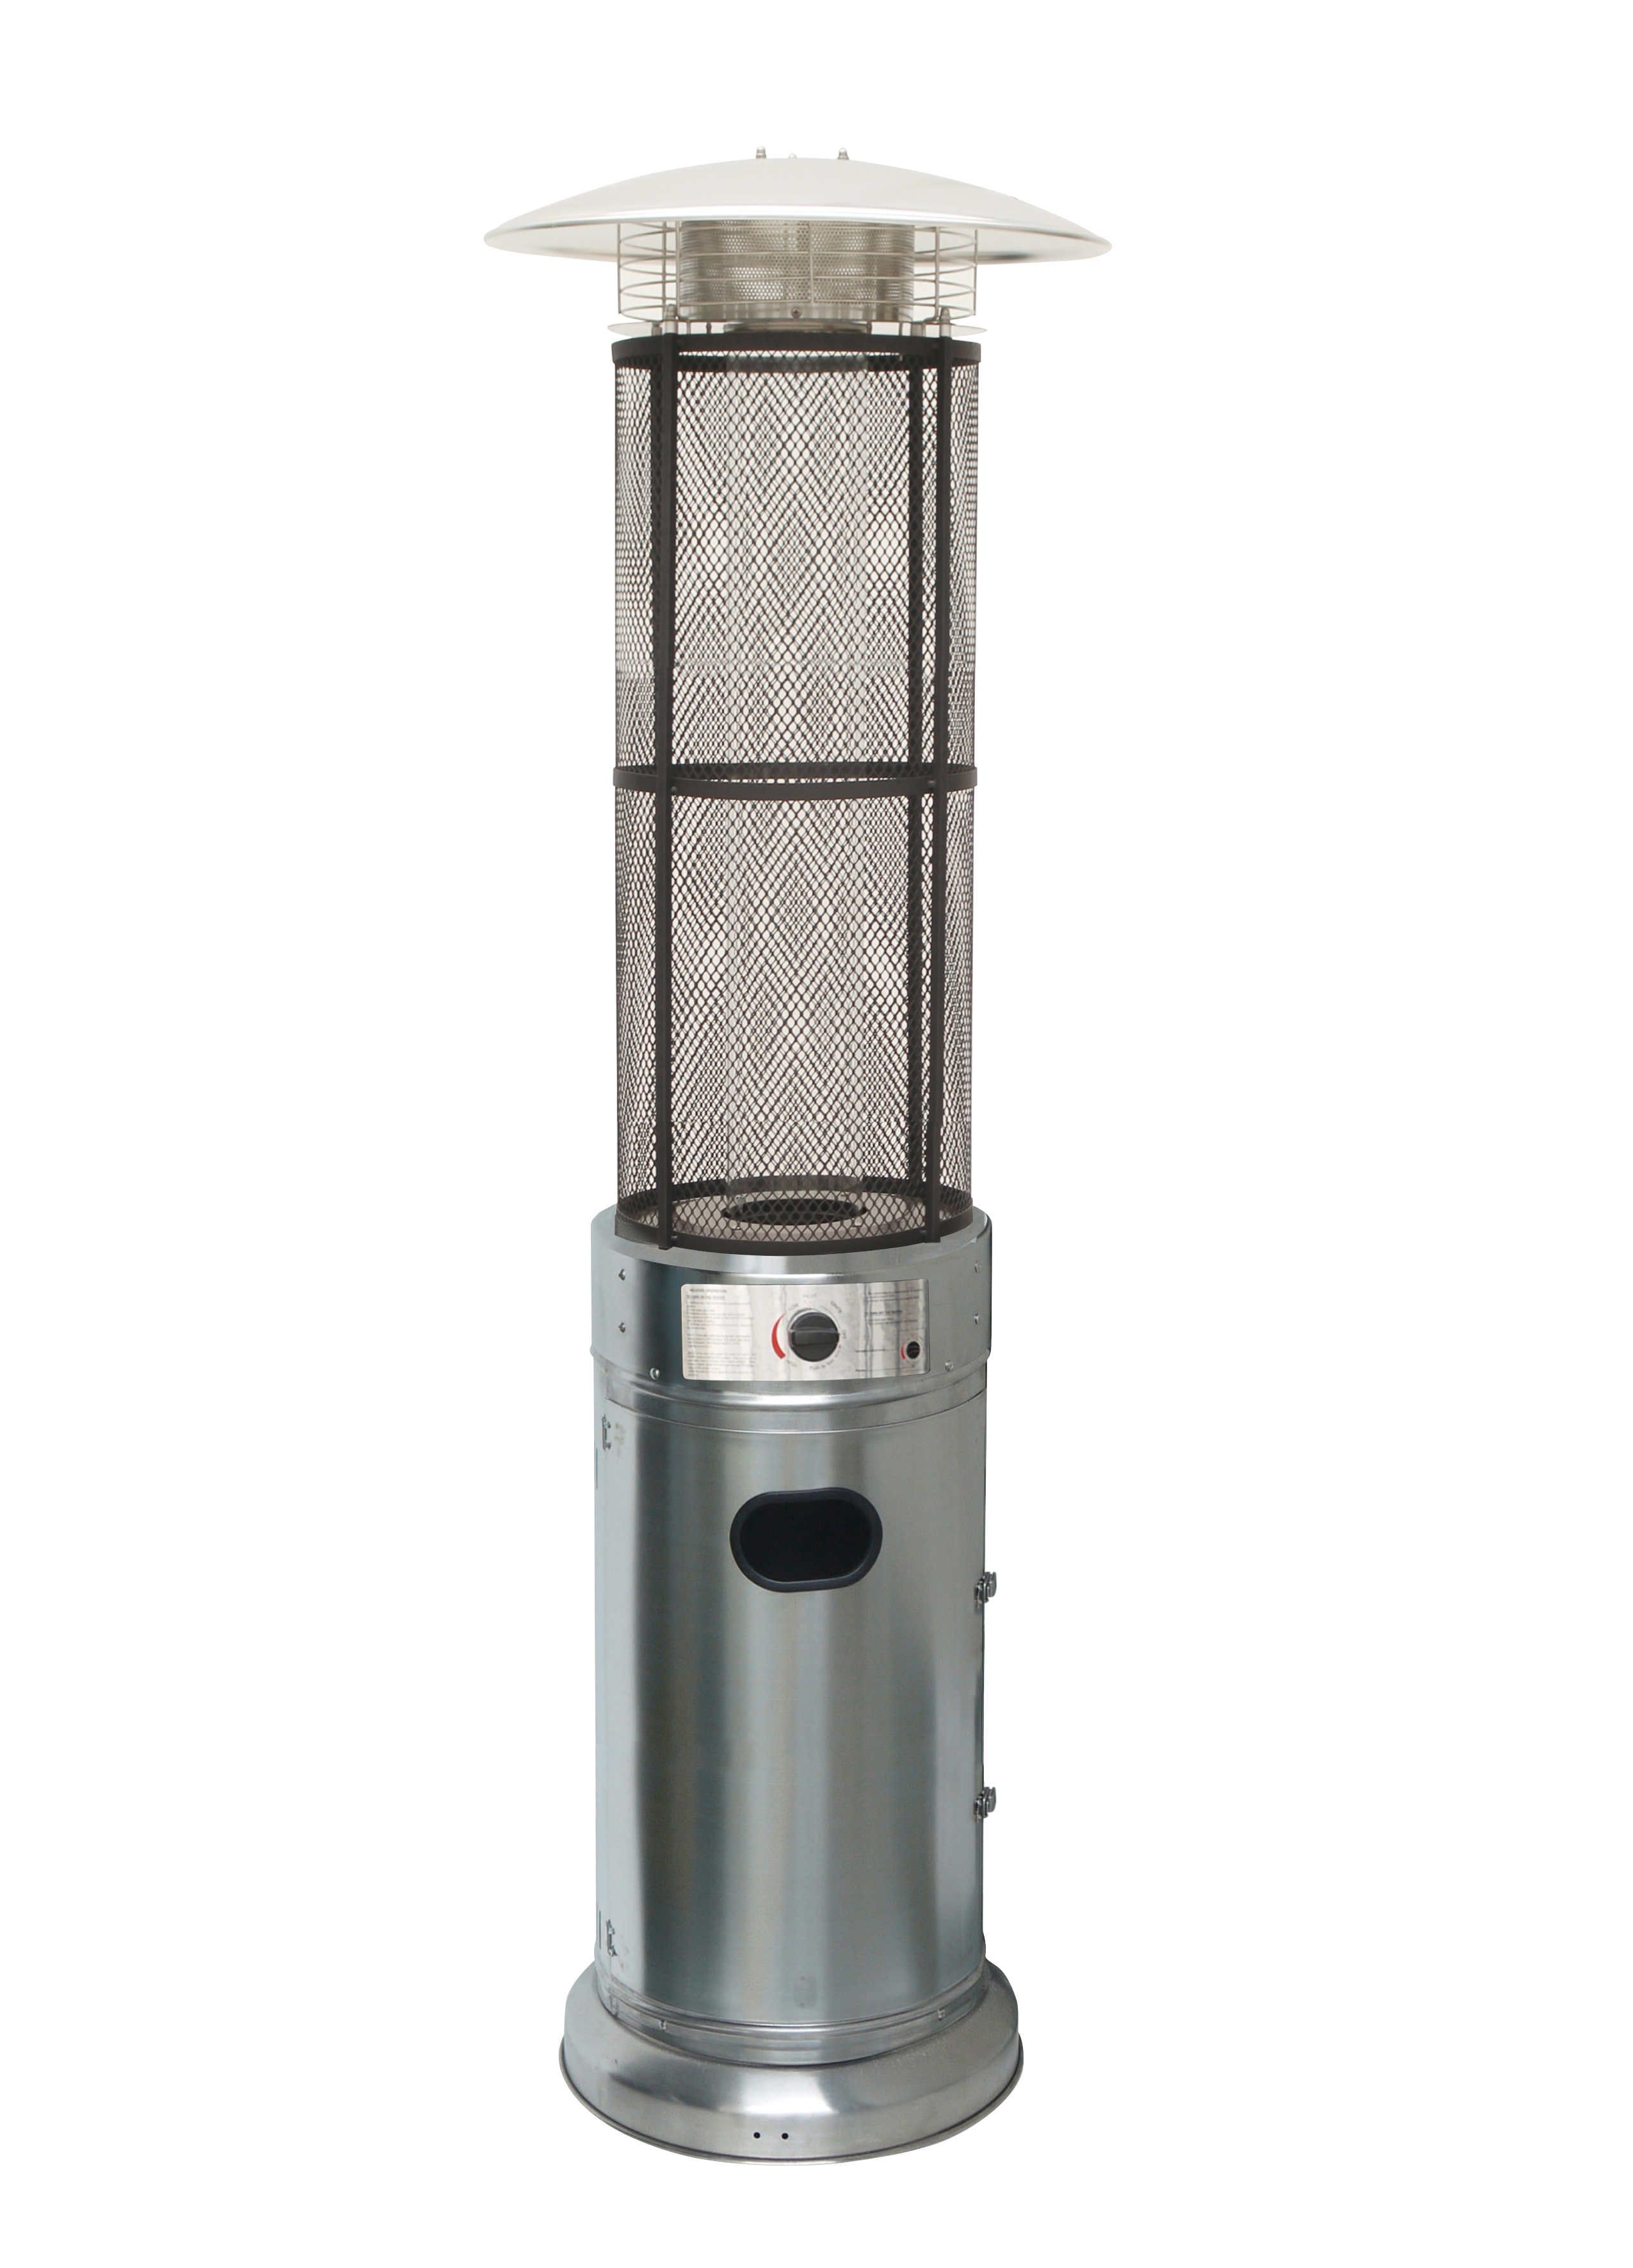 Stainless Steel Circle Glass Tube W/ Flames Heater Outdoor Patio Heater,  Silver